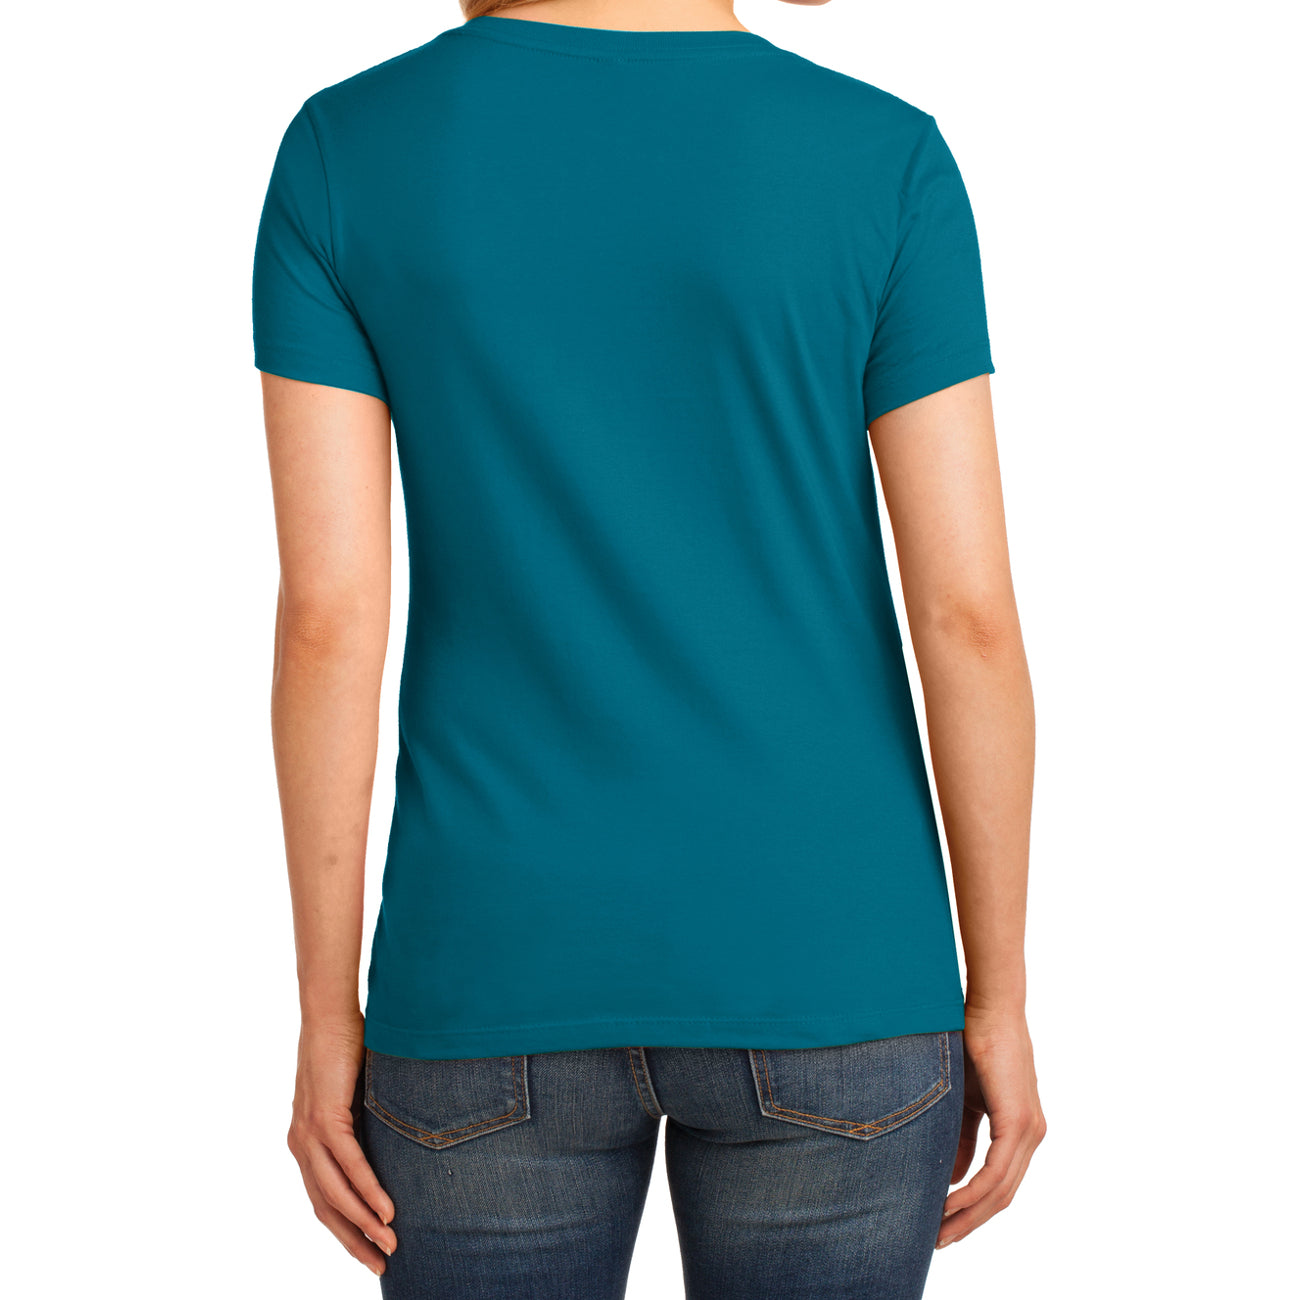 Women's Core Cotton V-Neck Tee - Teal - Back